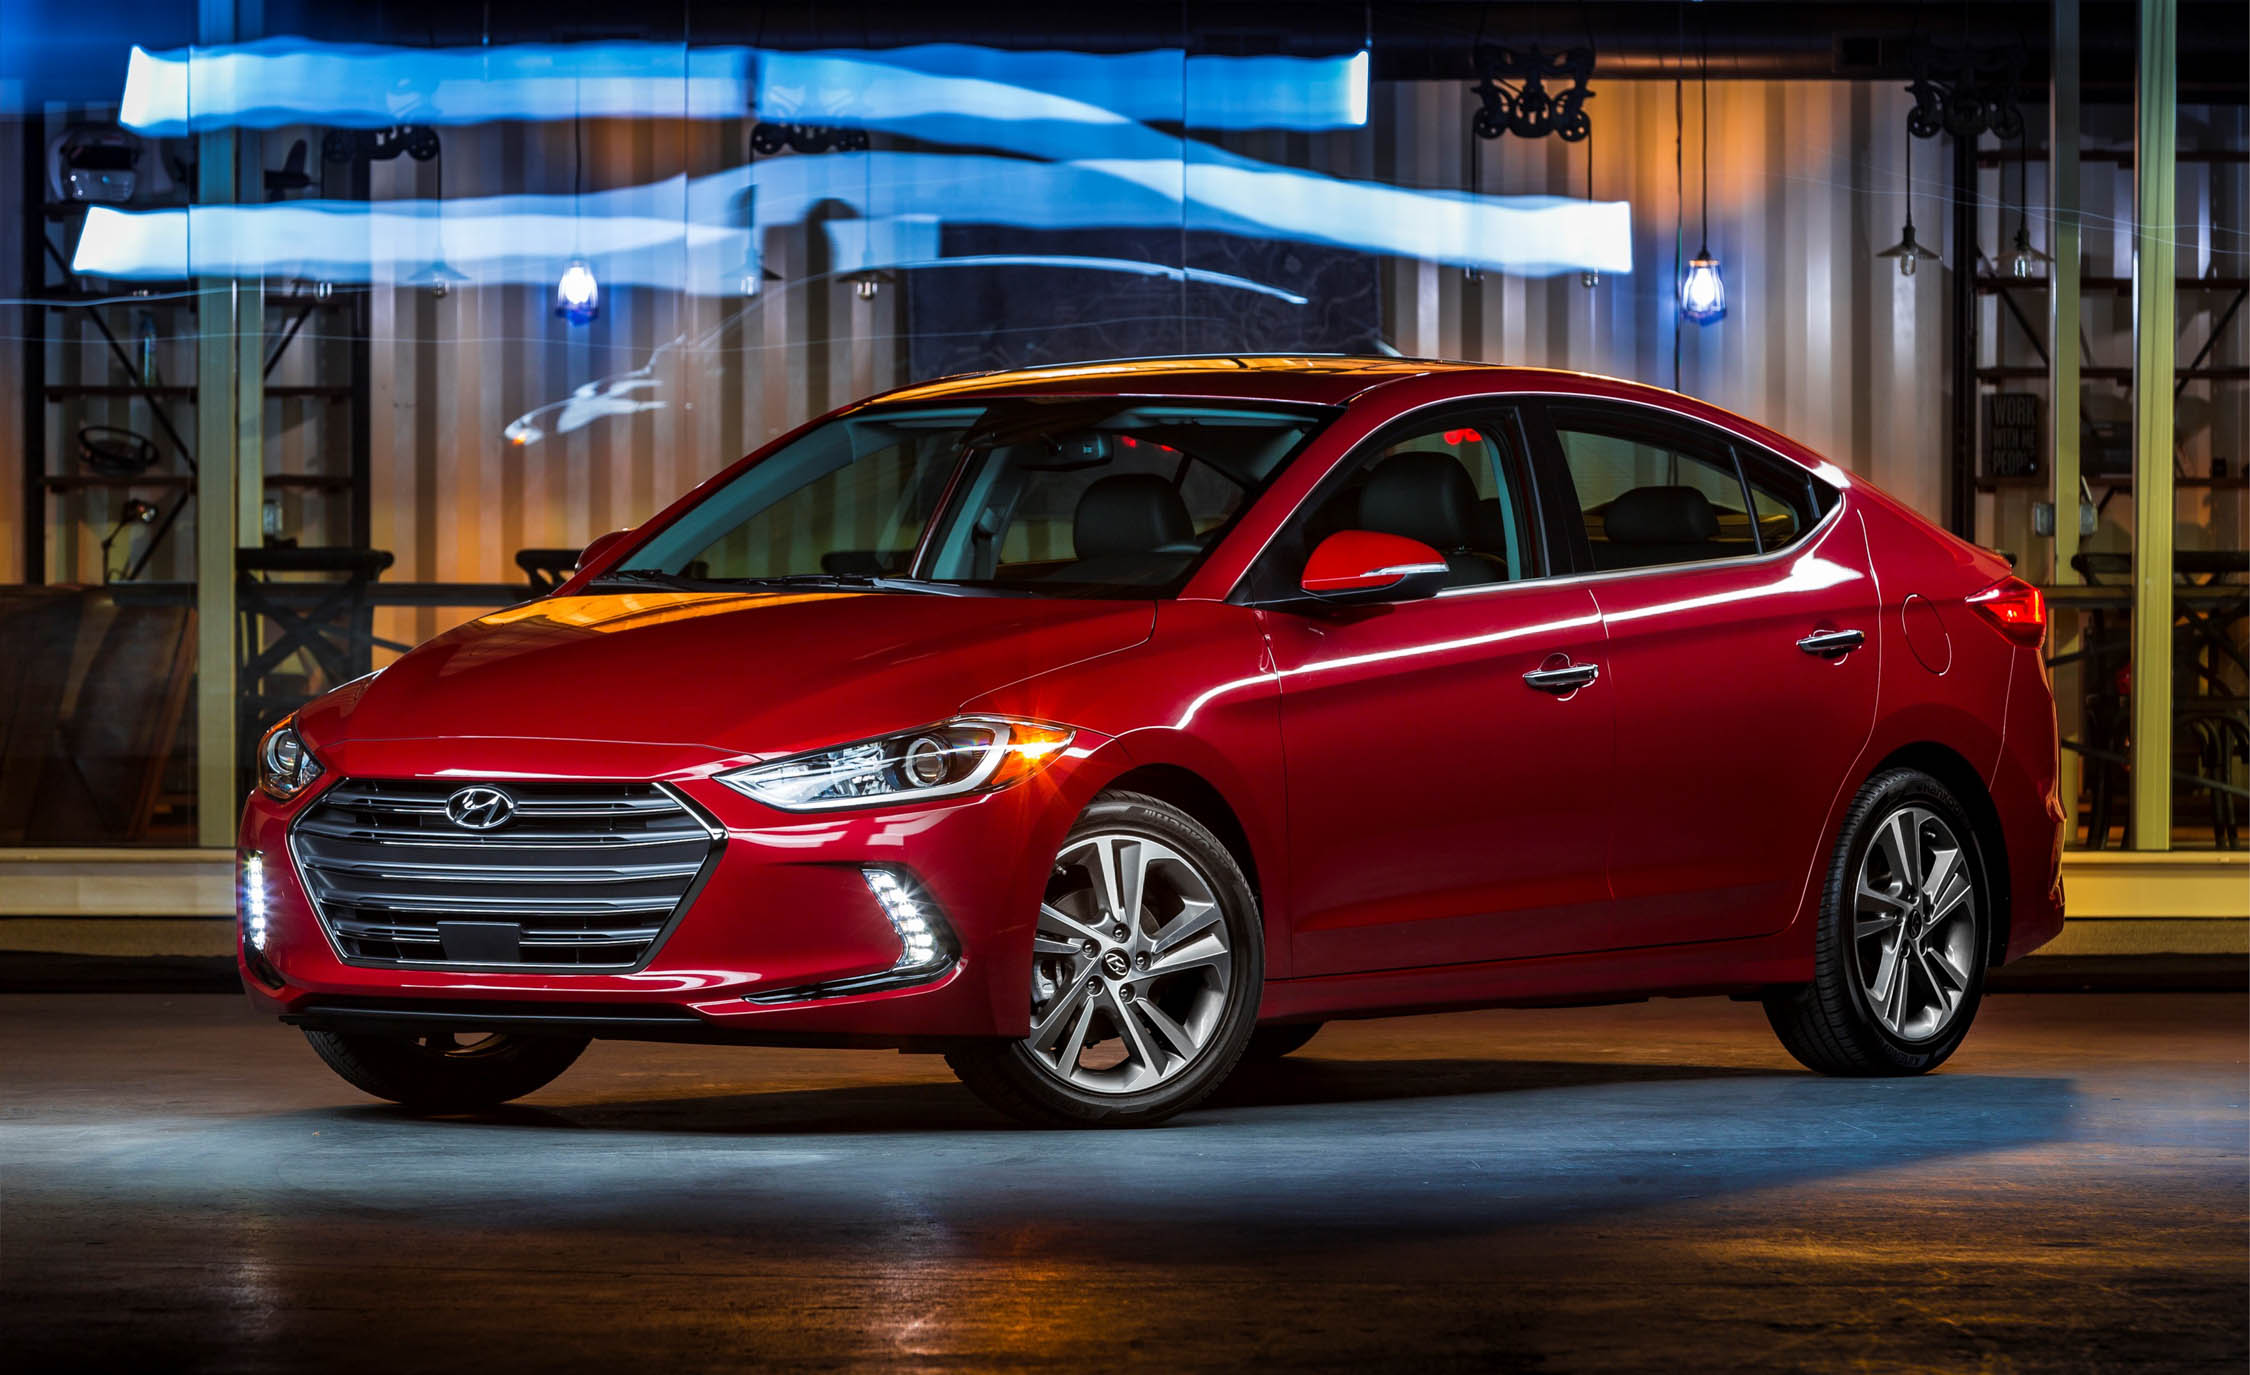 Hyundai Elantra Facelift | Specifications, Price, Mileage, Colors, Photos